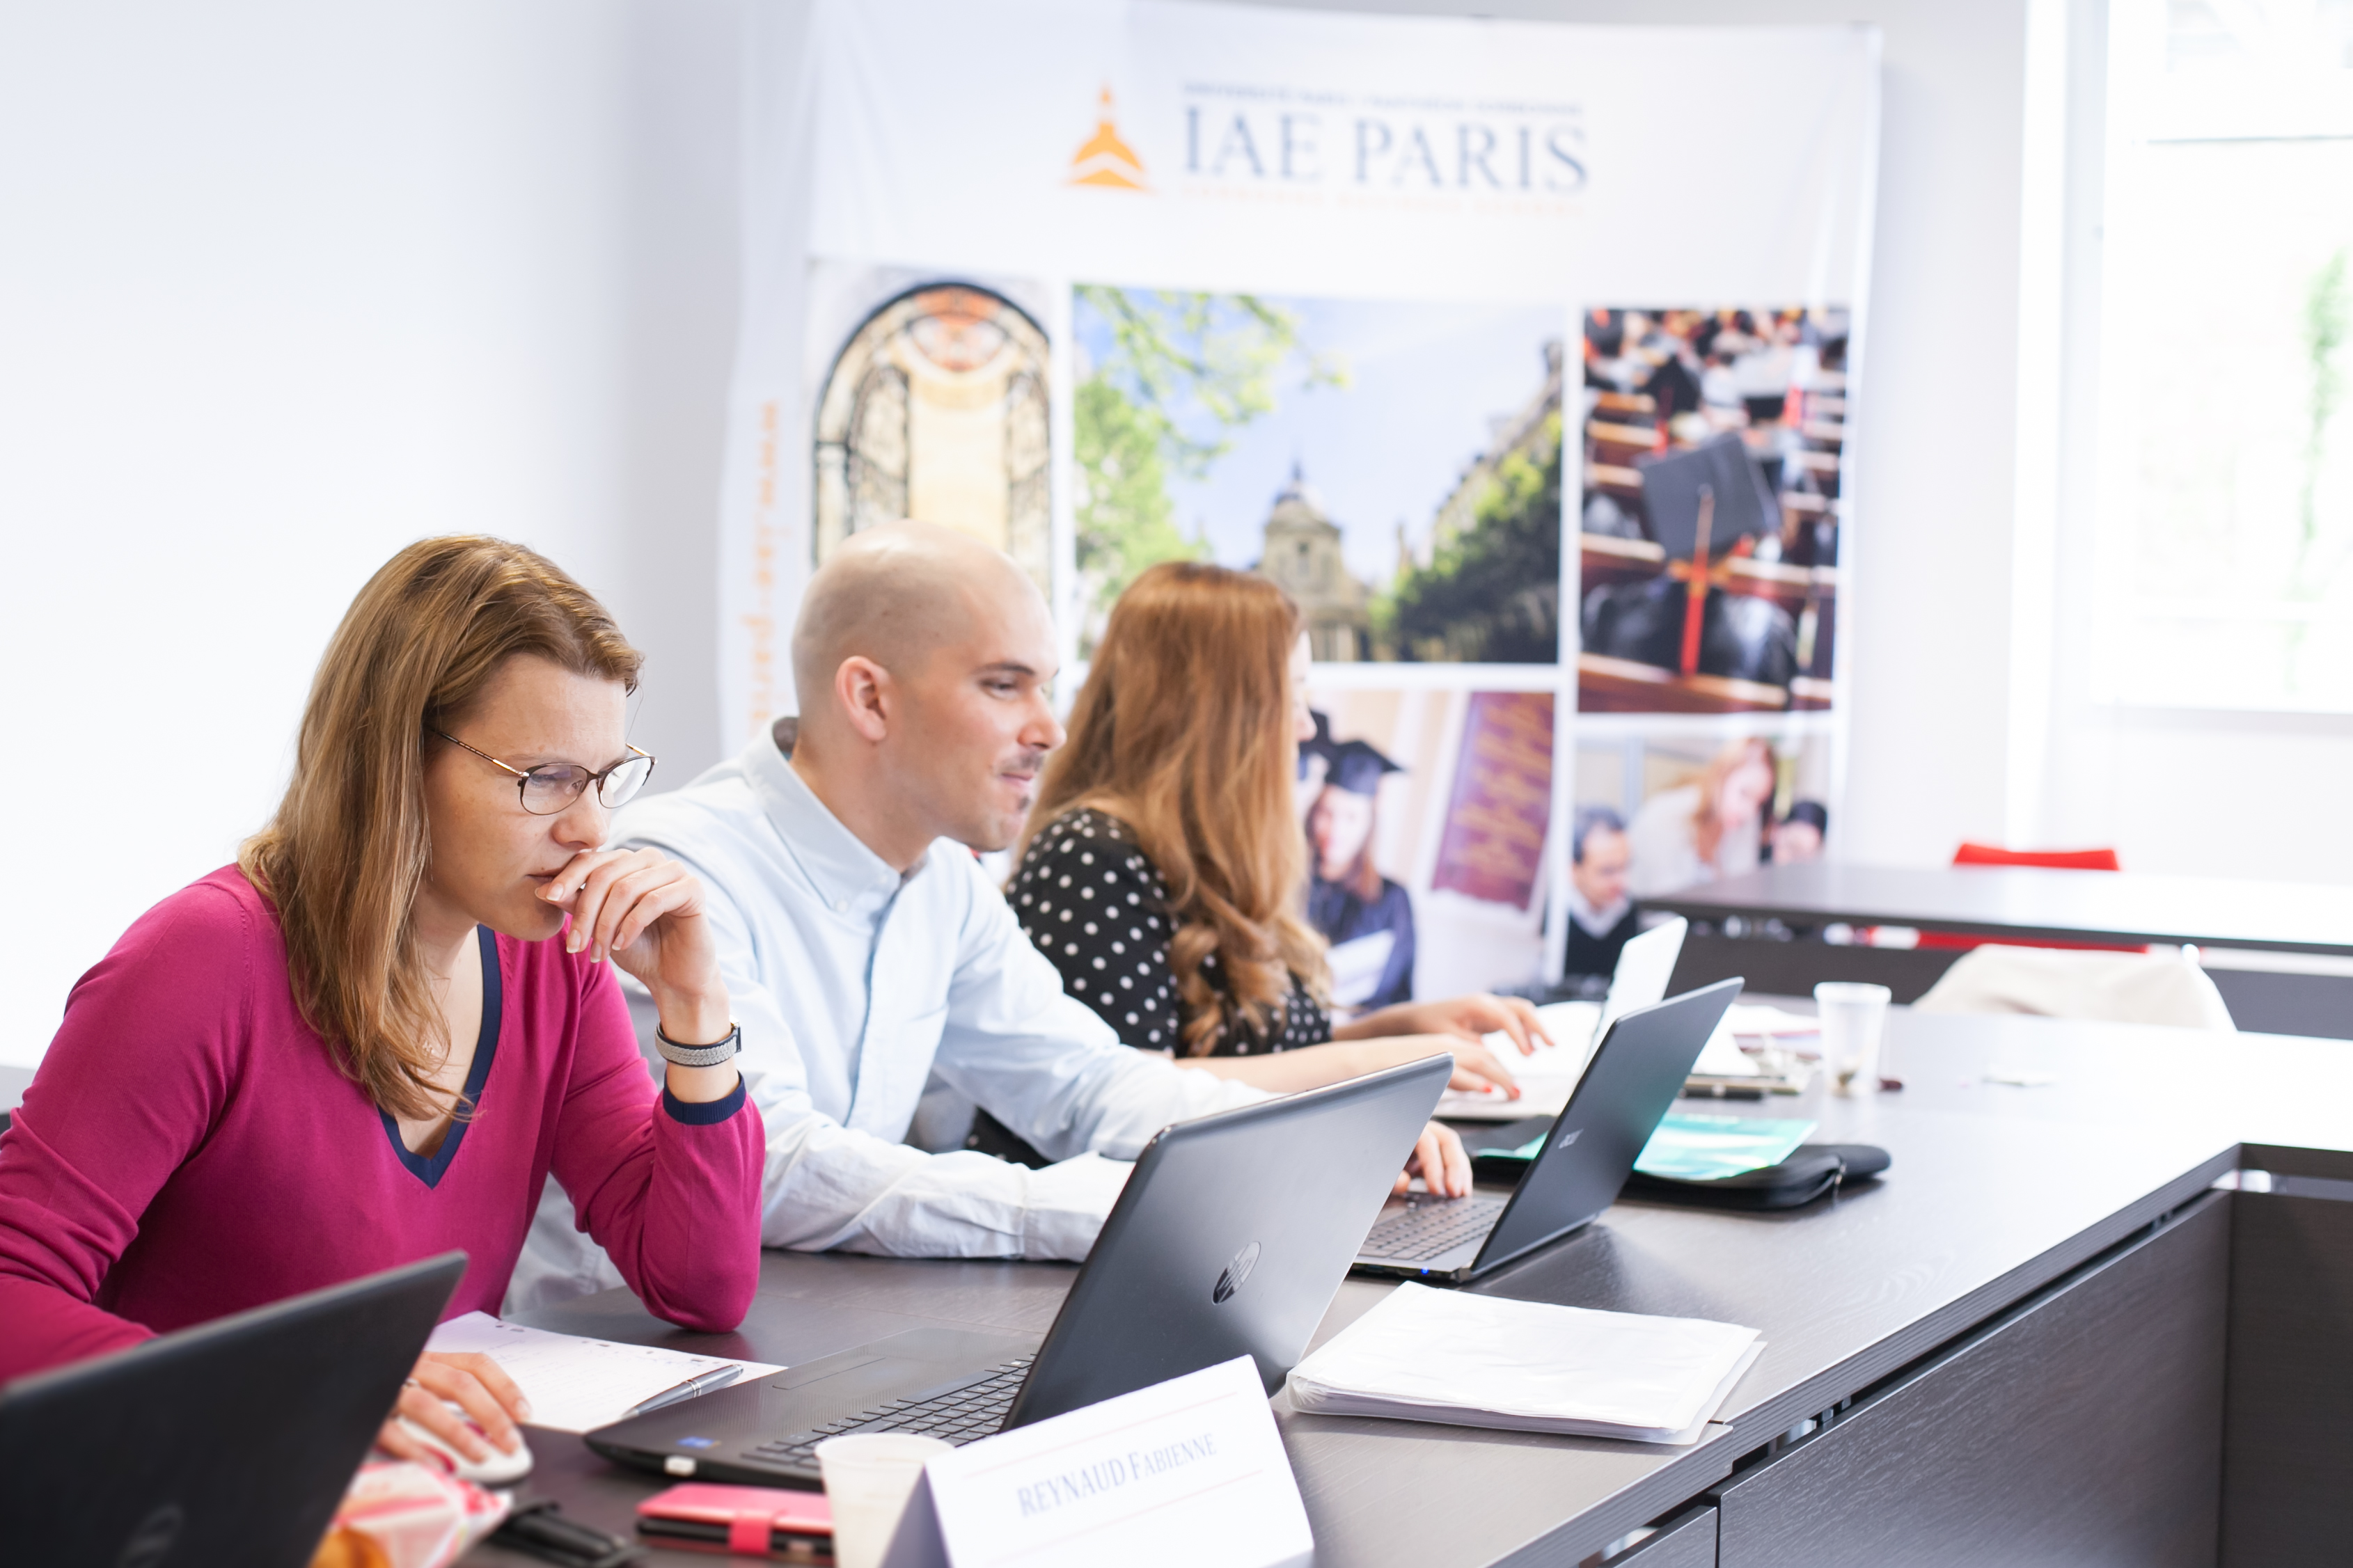 Etudiants © IAE Paris